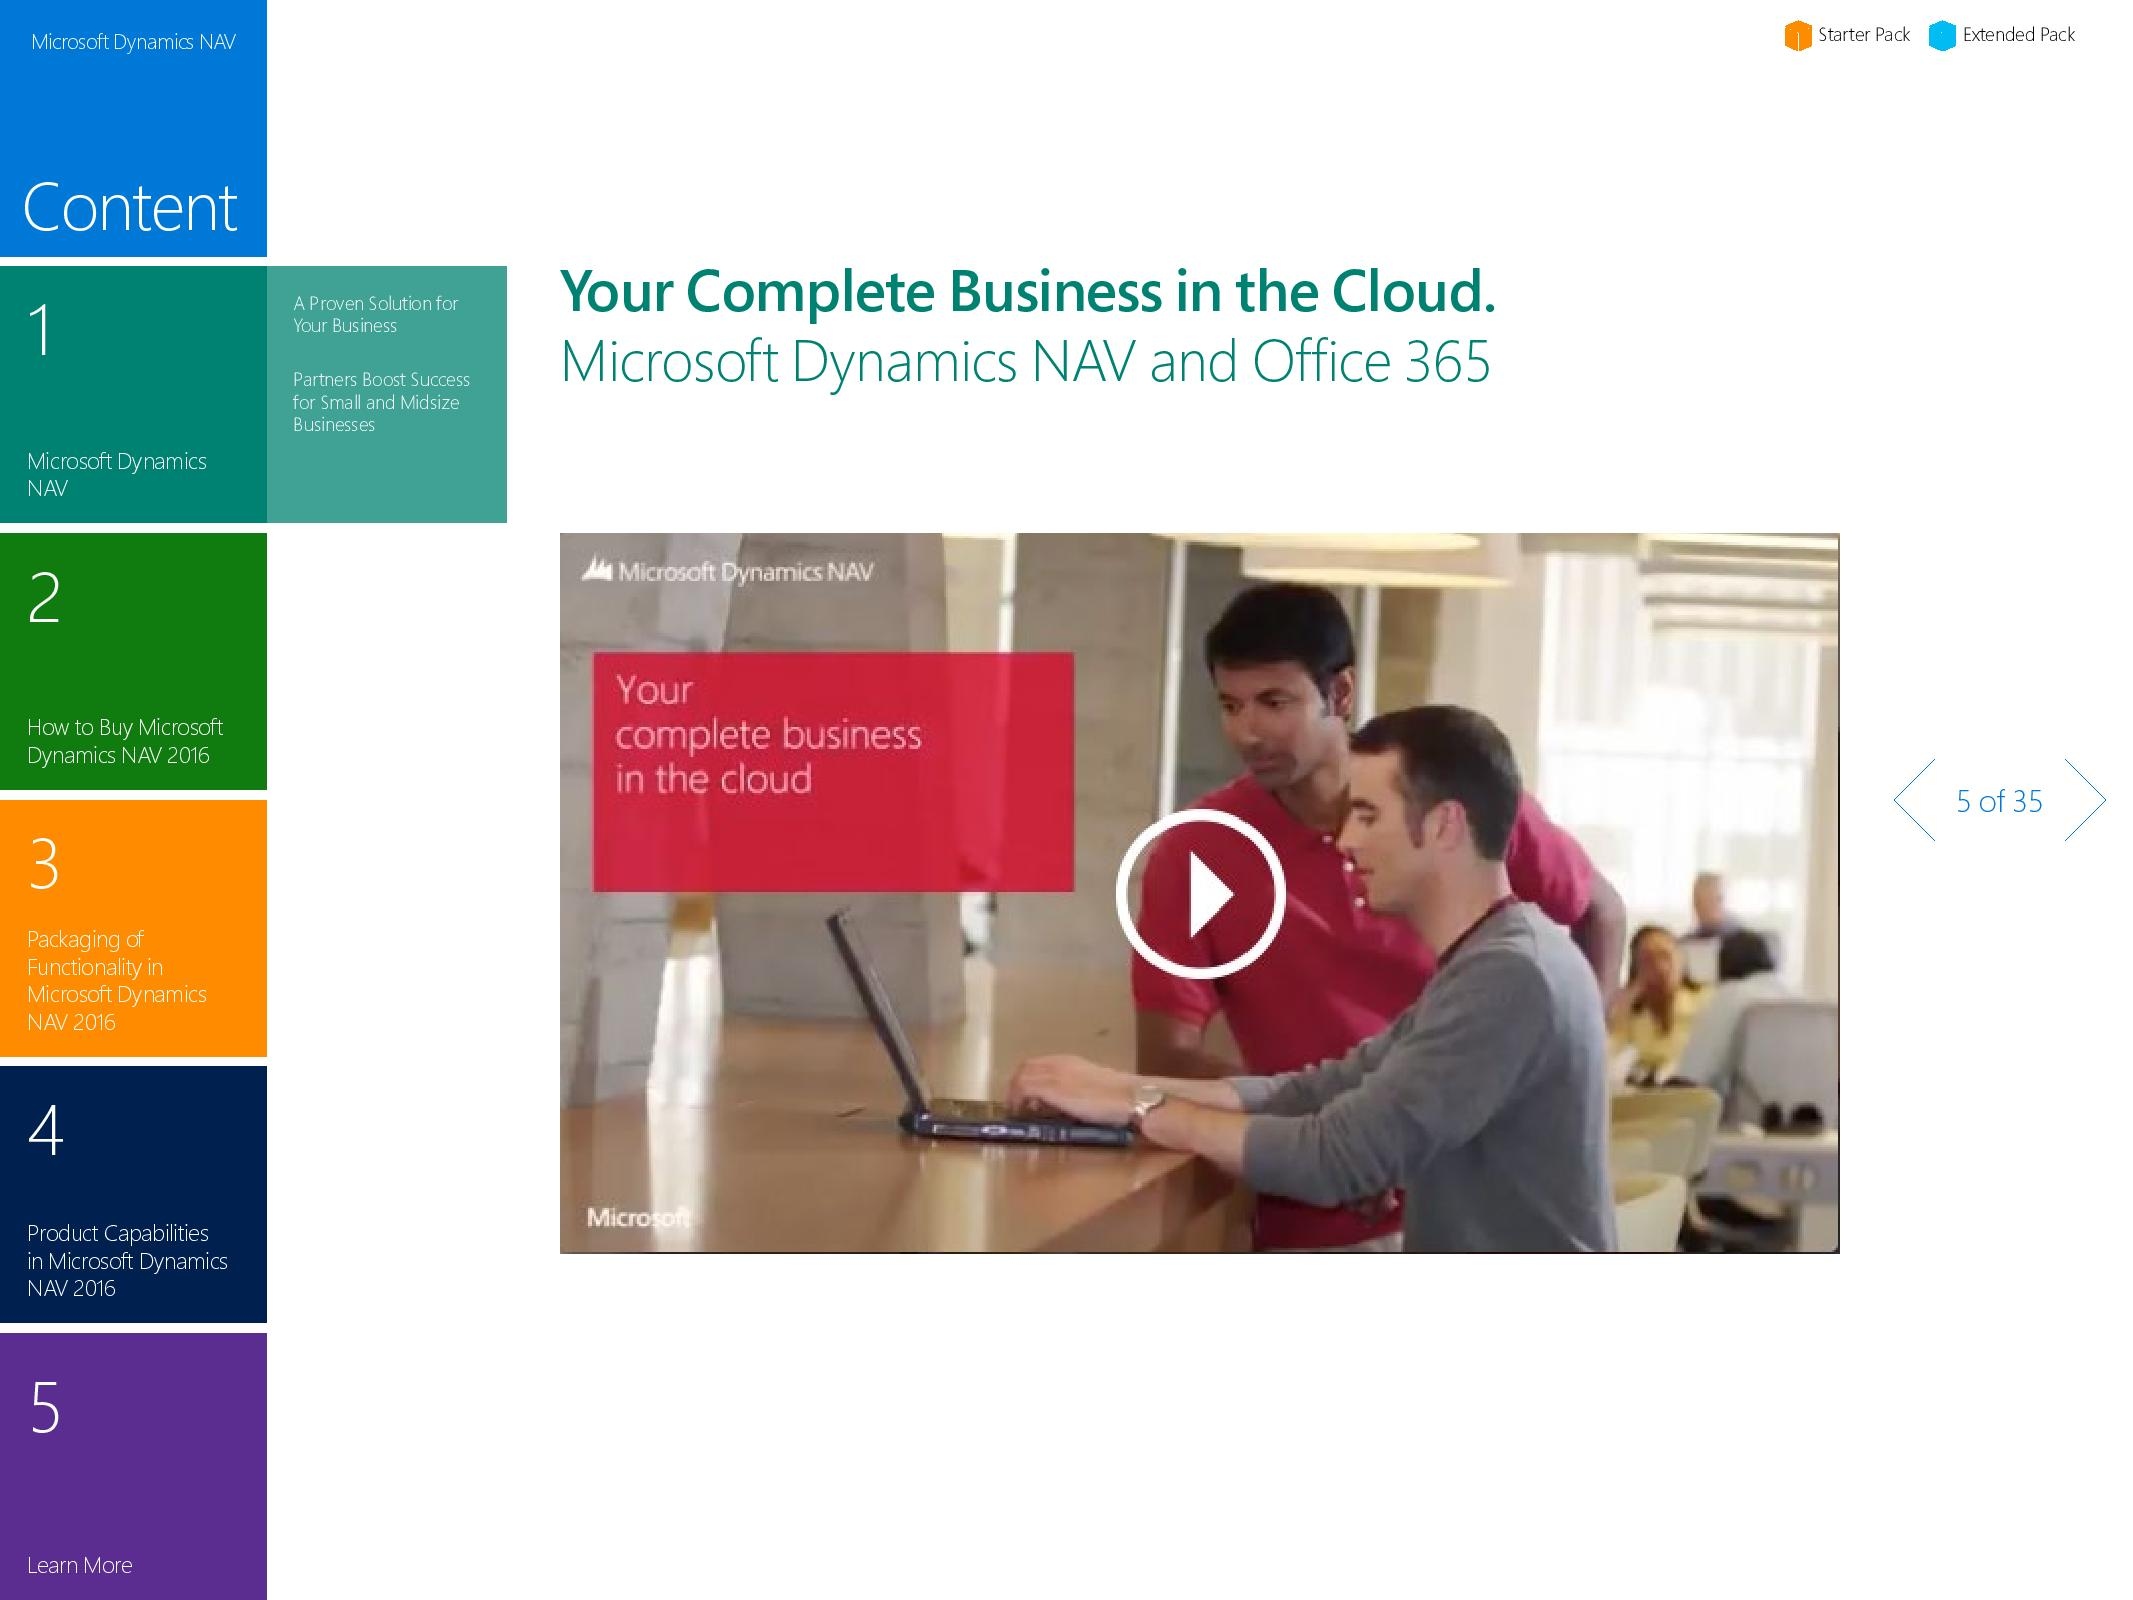 microsoftdynamicsnav2016_productoverview_and_capabilityguide-page-005